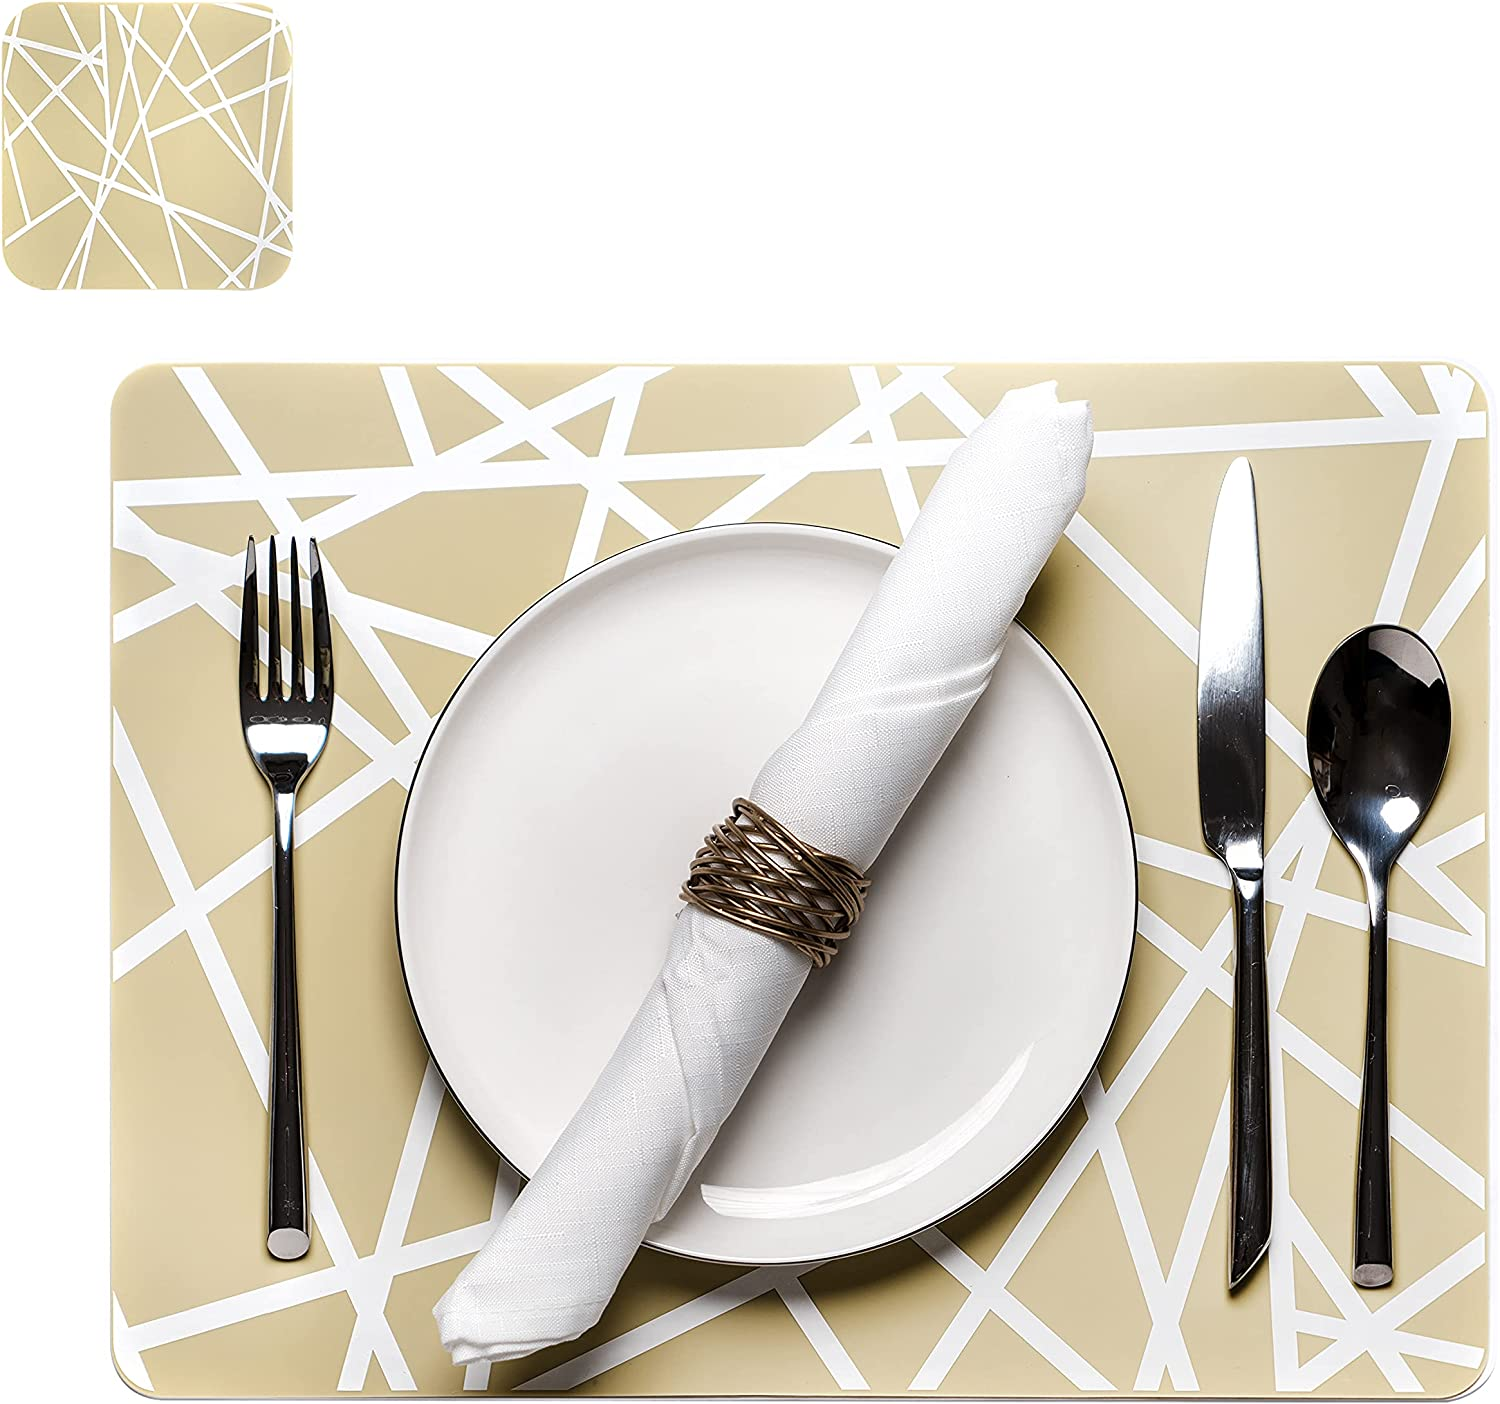 Silicone Placemats for Dining Table - Placemats Set of 4 and 4 Coasters - Multipurpose Use as Kids Placemats - Waterproof, Heat Resistant, Non-Slip Table Mats - Easy to Clean and %100 Food Grade